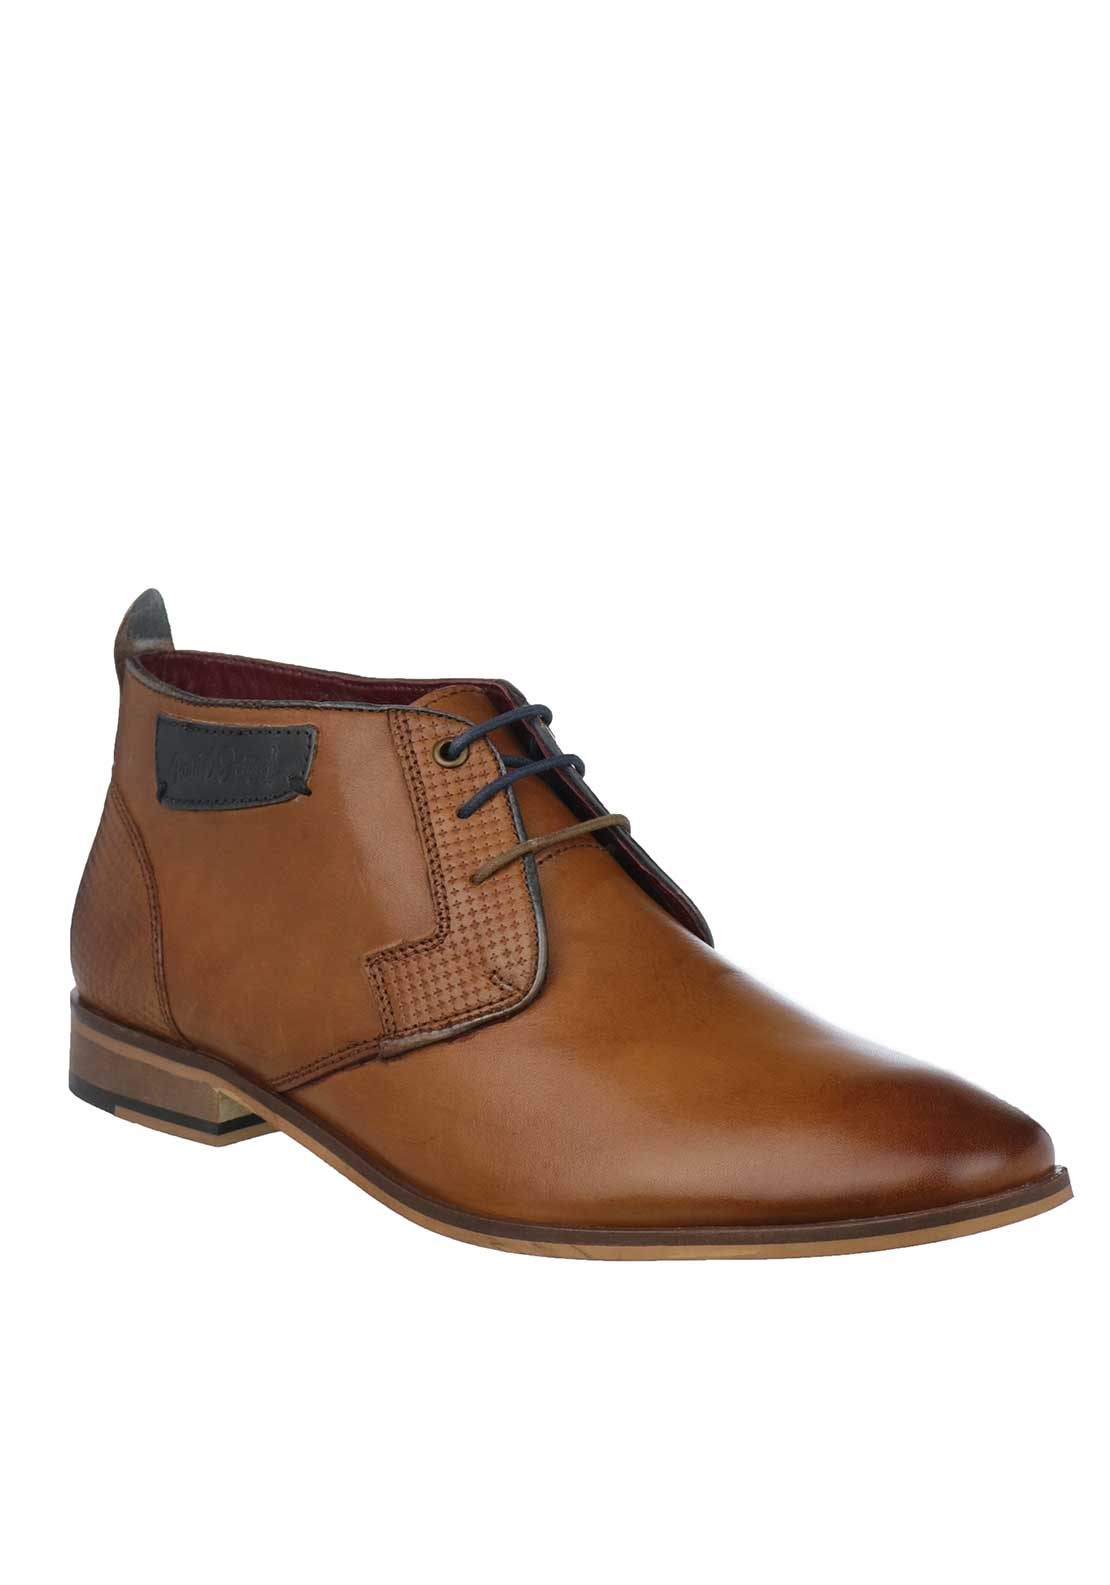 Paul O'Donnell by POD Fresno Leather Boots, Tan